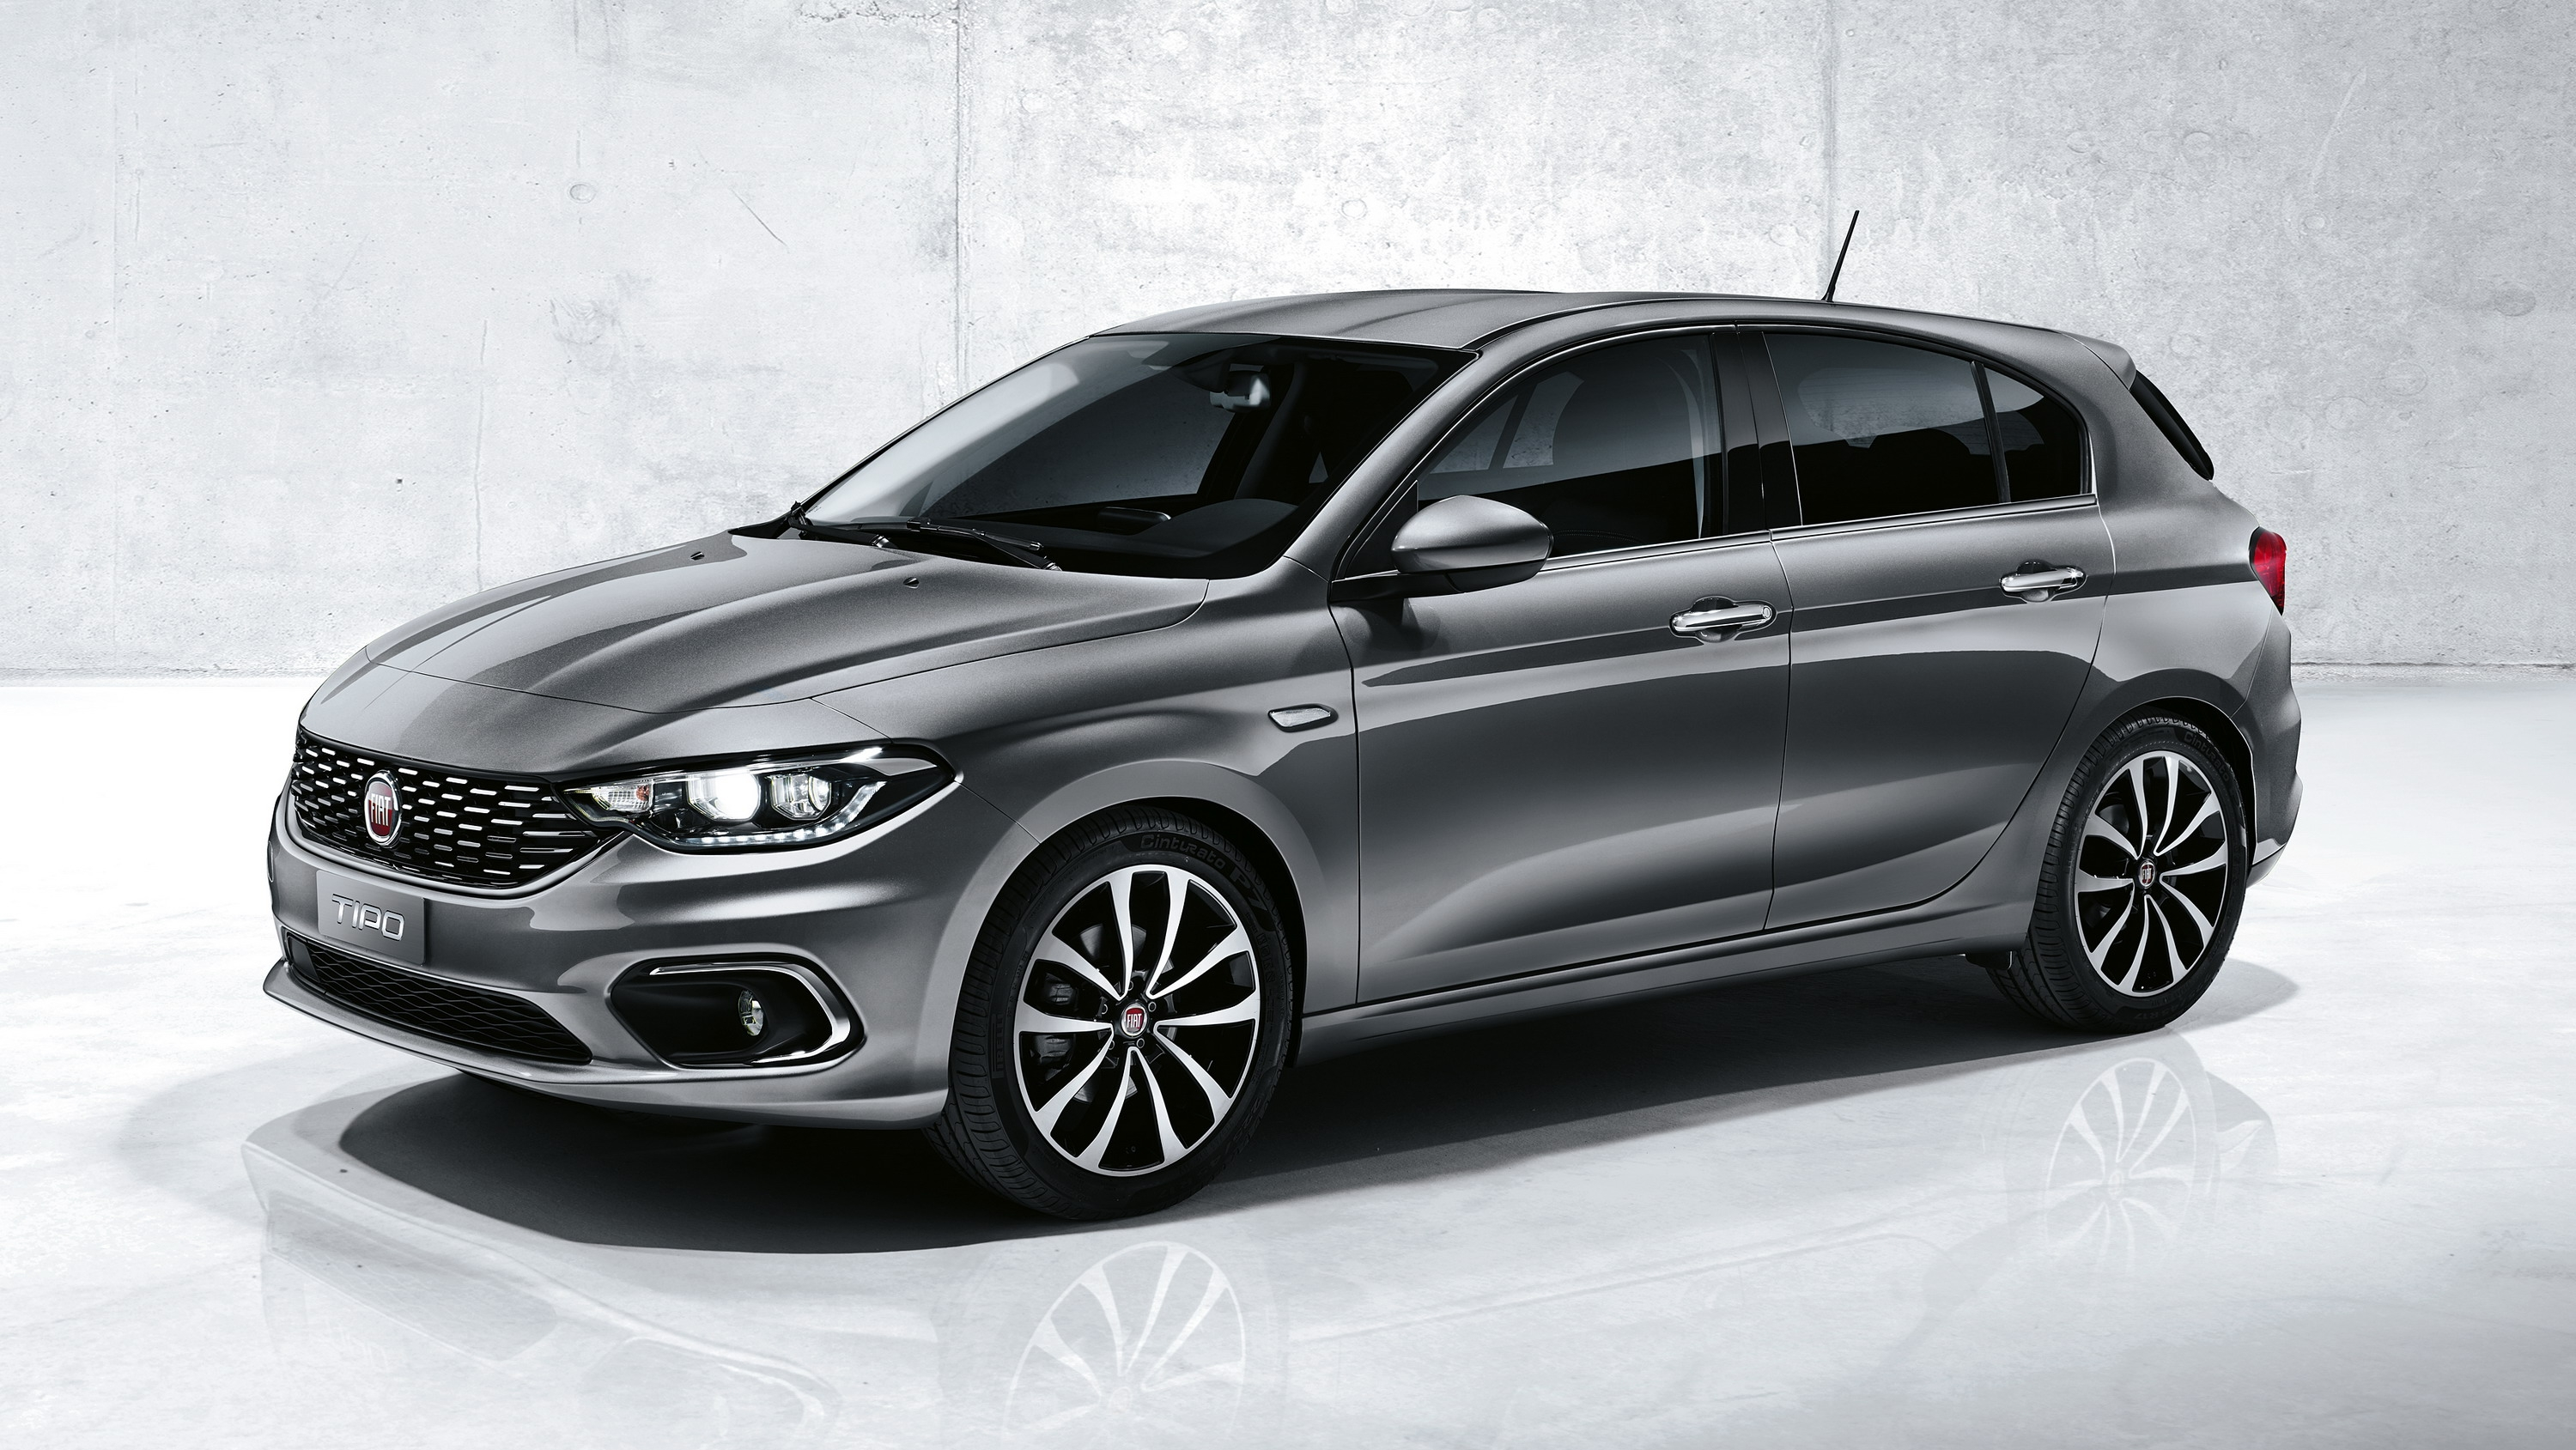 2017 fiat tipo hatchback pictures photos wallpapers top speed. Black Bedroom Furniture Sets. Home Design Ideas